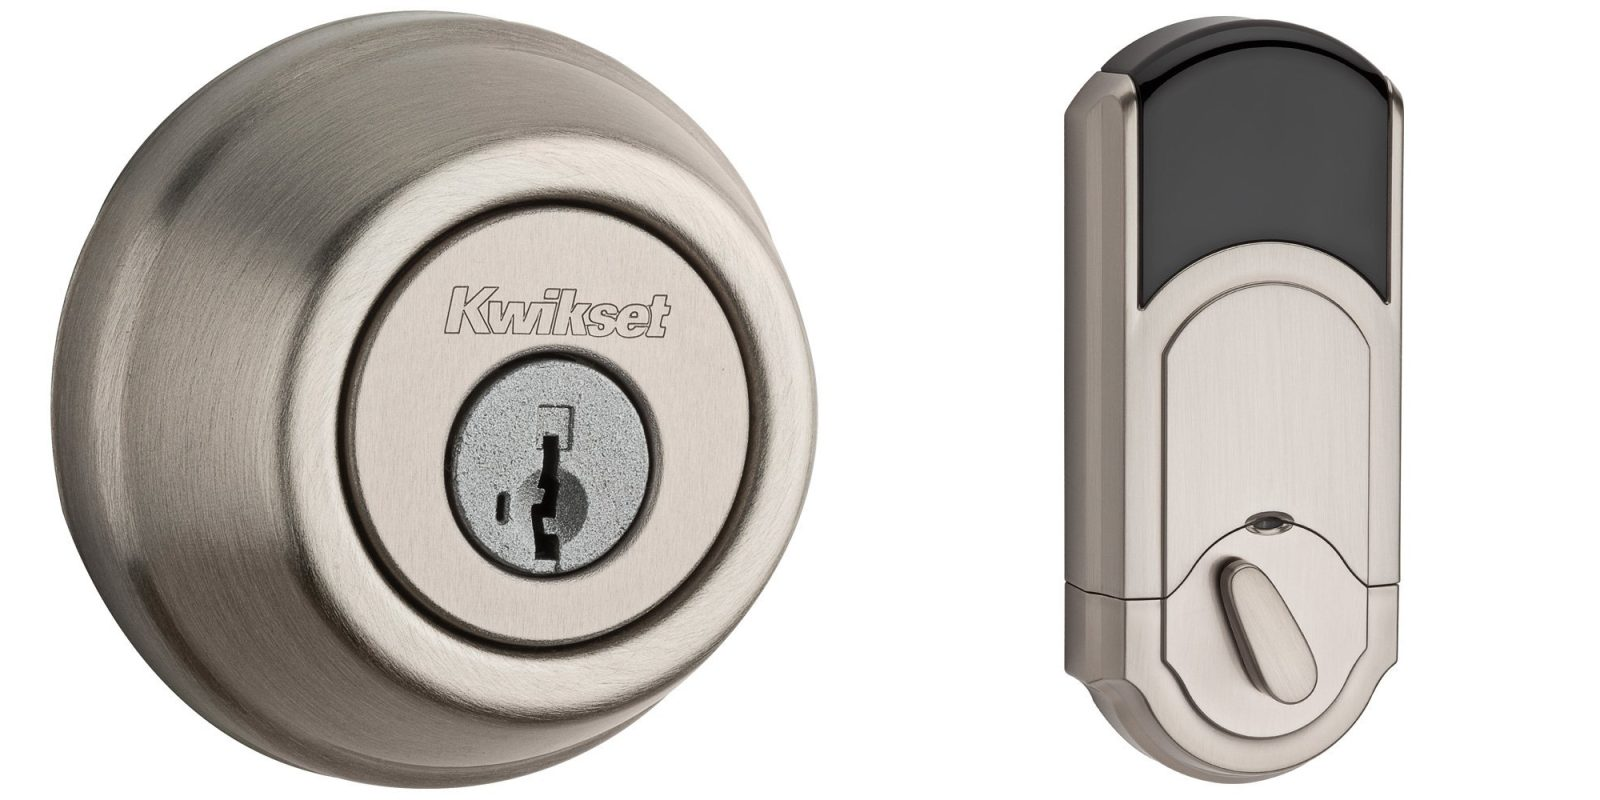 Kwikset drops the extras on its new internet-connected